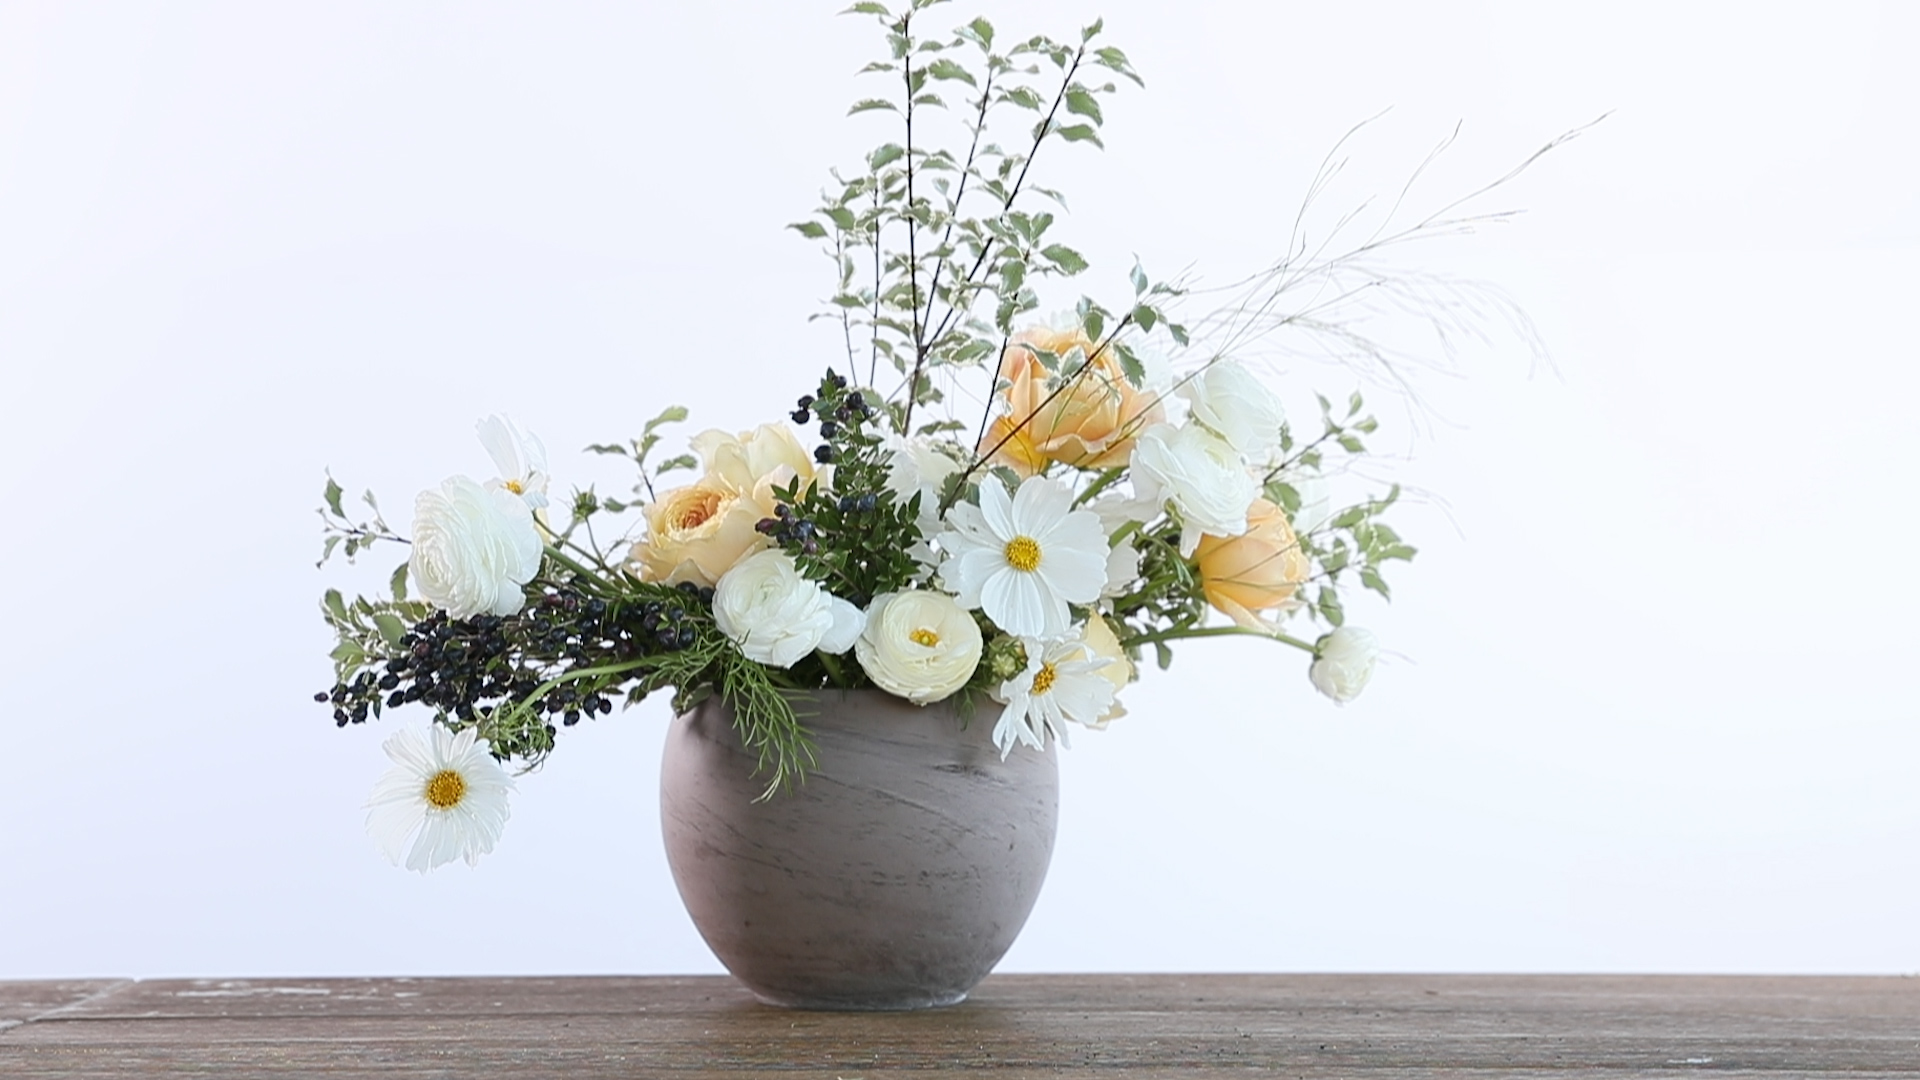 How to Arrange Flowers in a Wide-Mouthed Vase